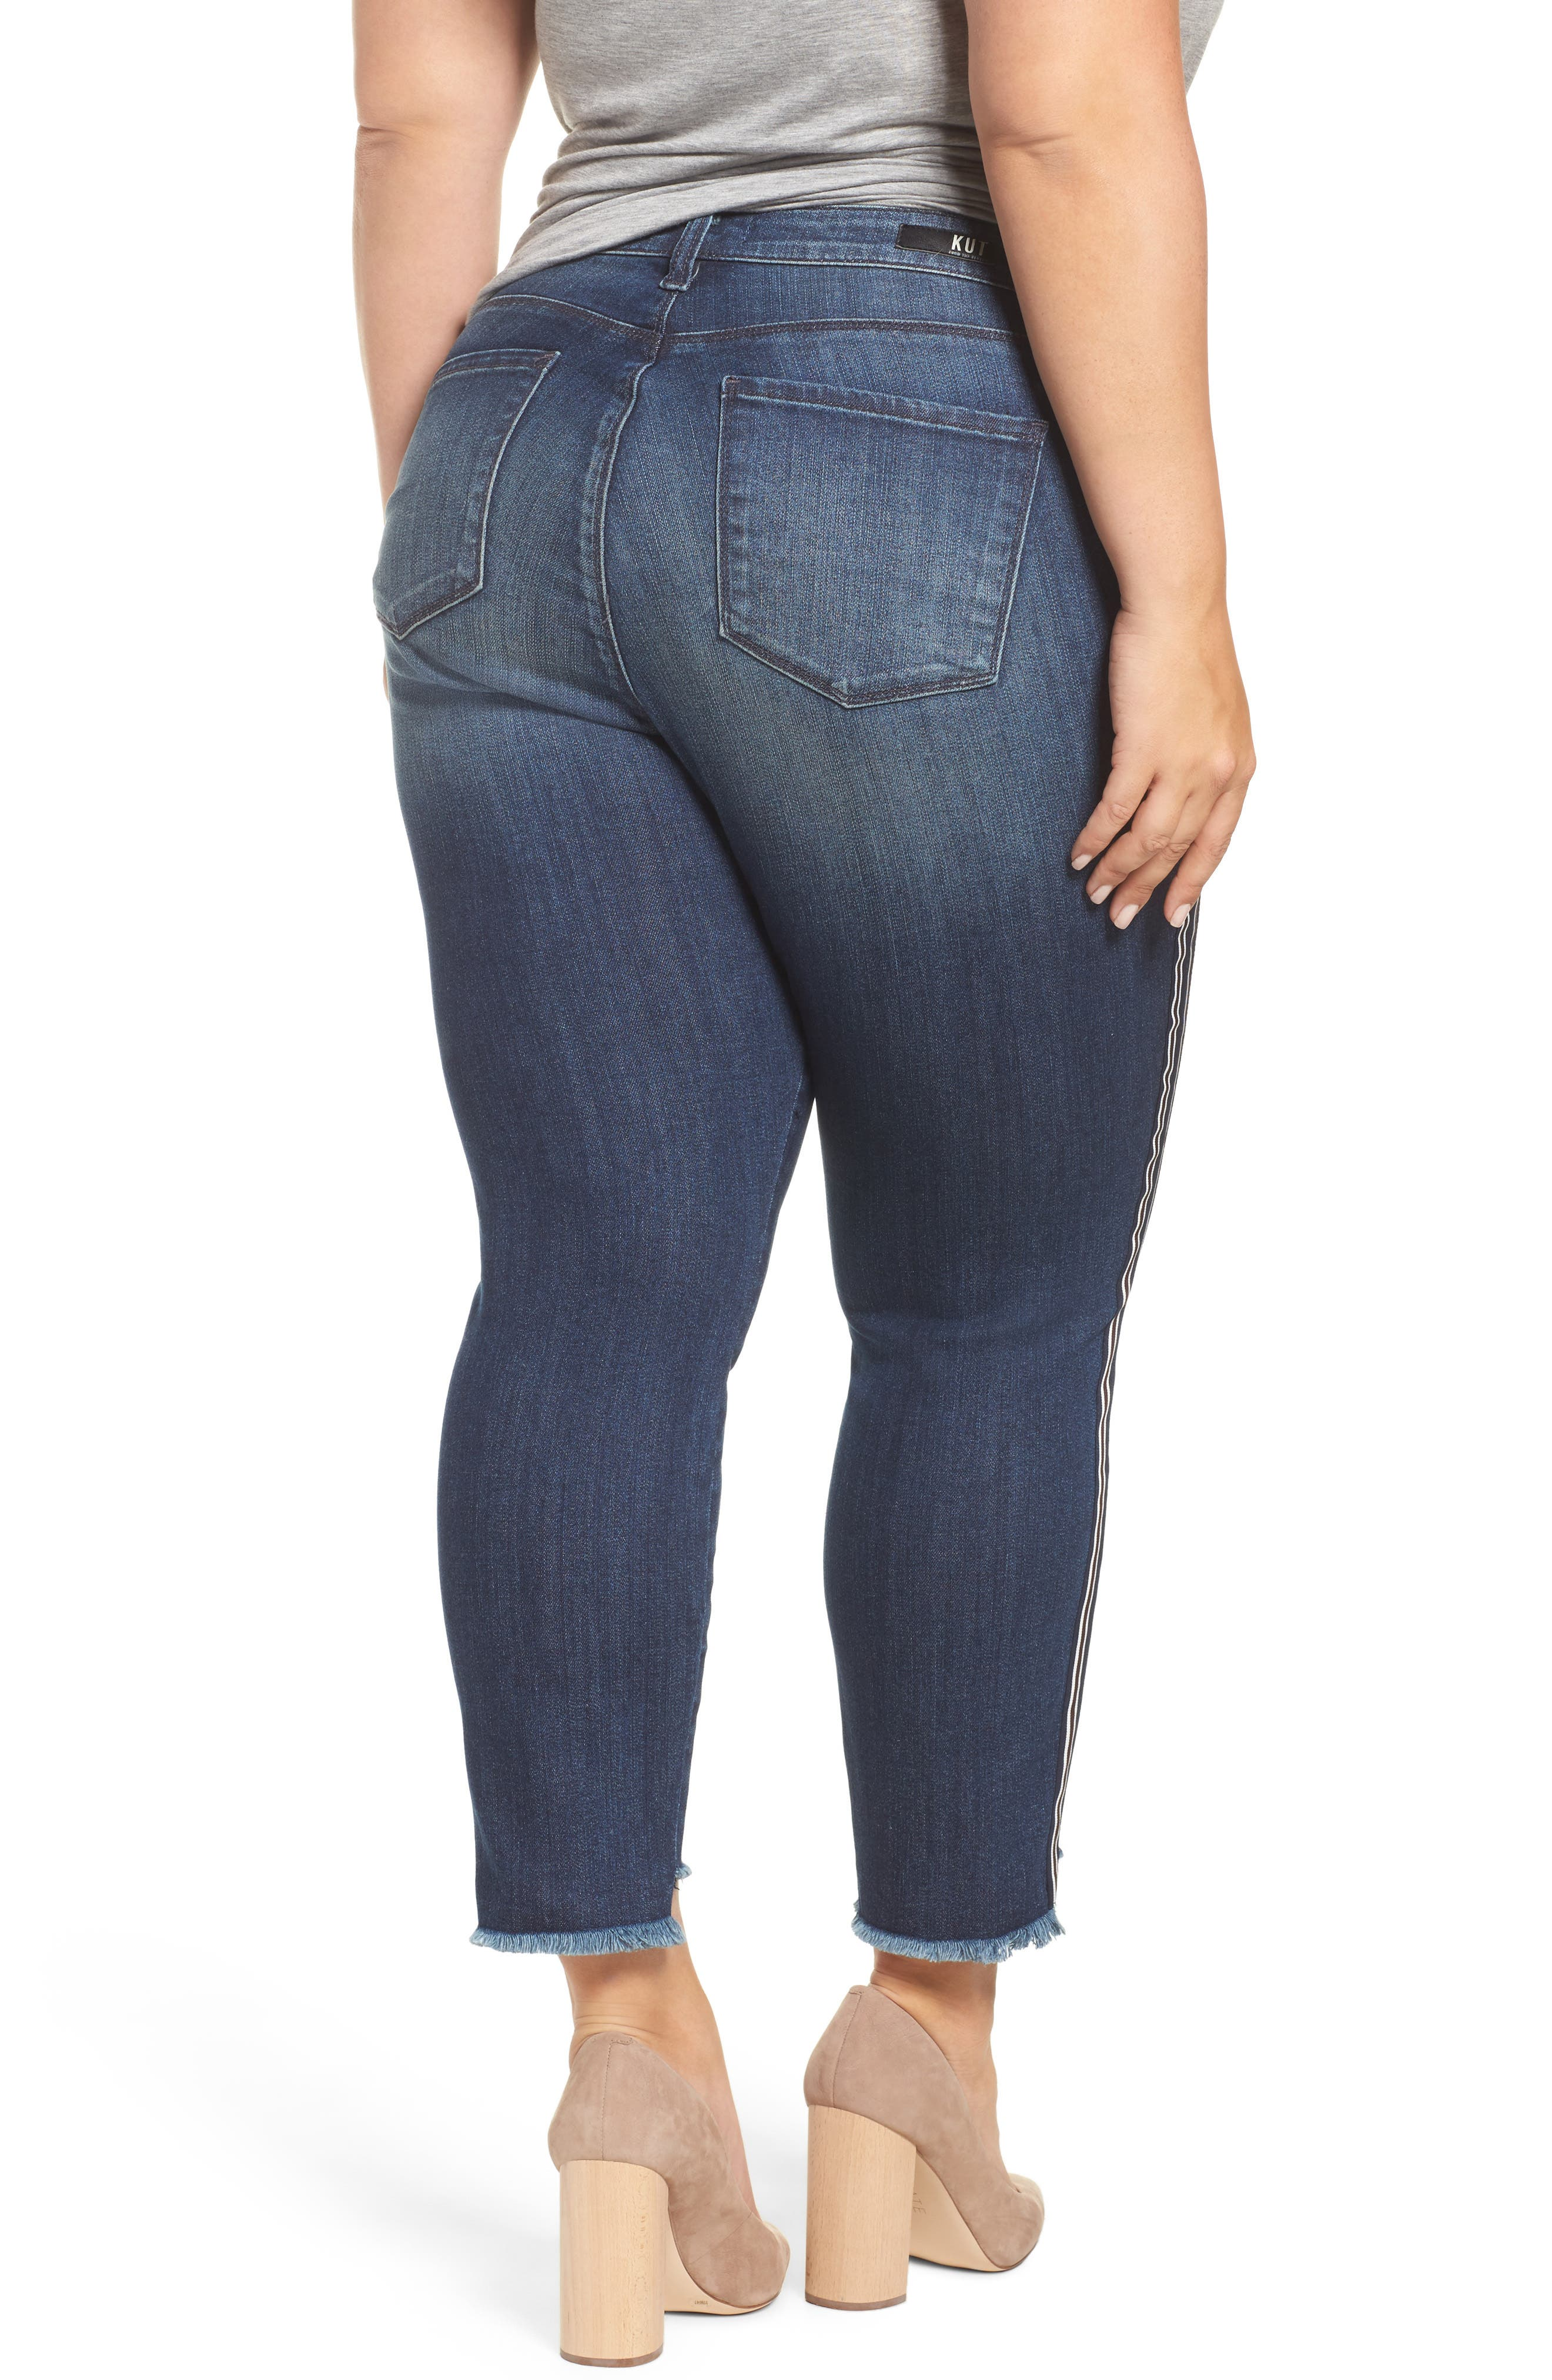 Alternate Image 2  - KUT from the Kloth Reese Side Stripe Uneven Ankle Jeans (Analyzed) (Plus Size)